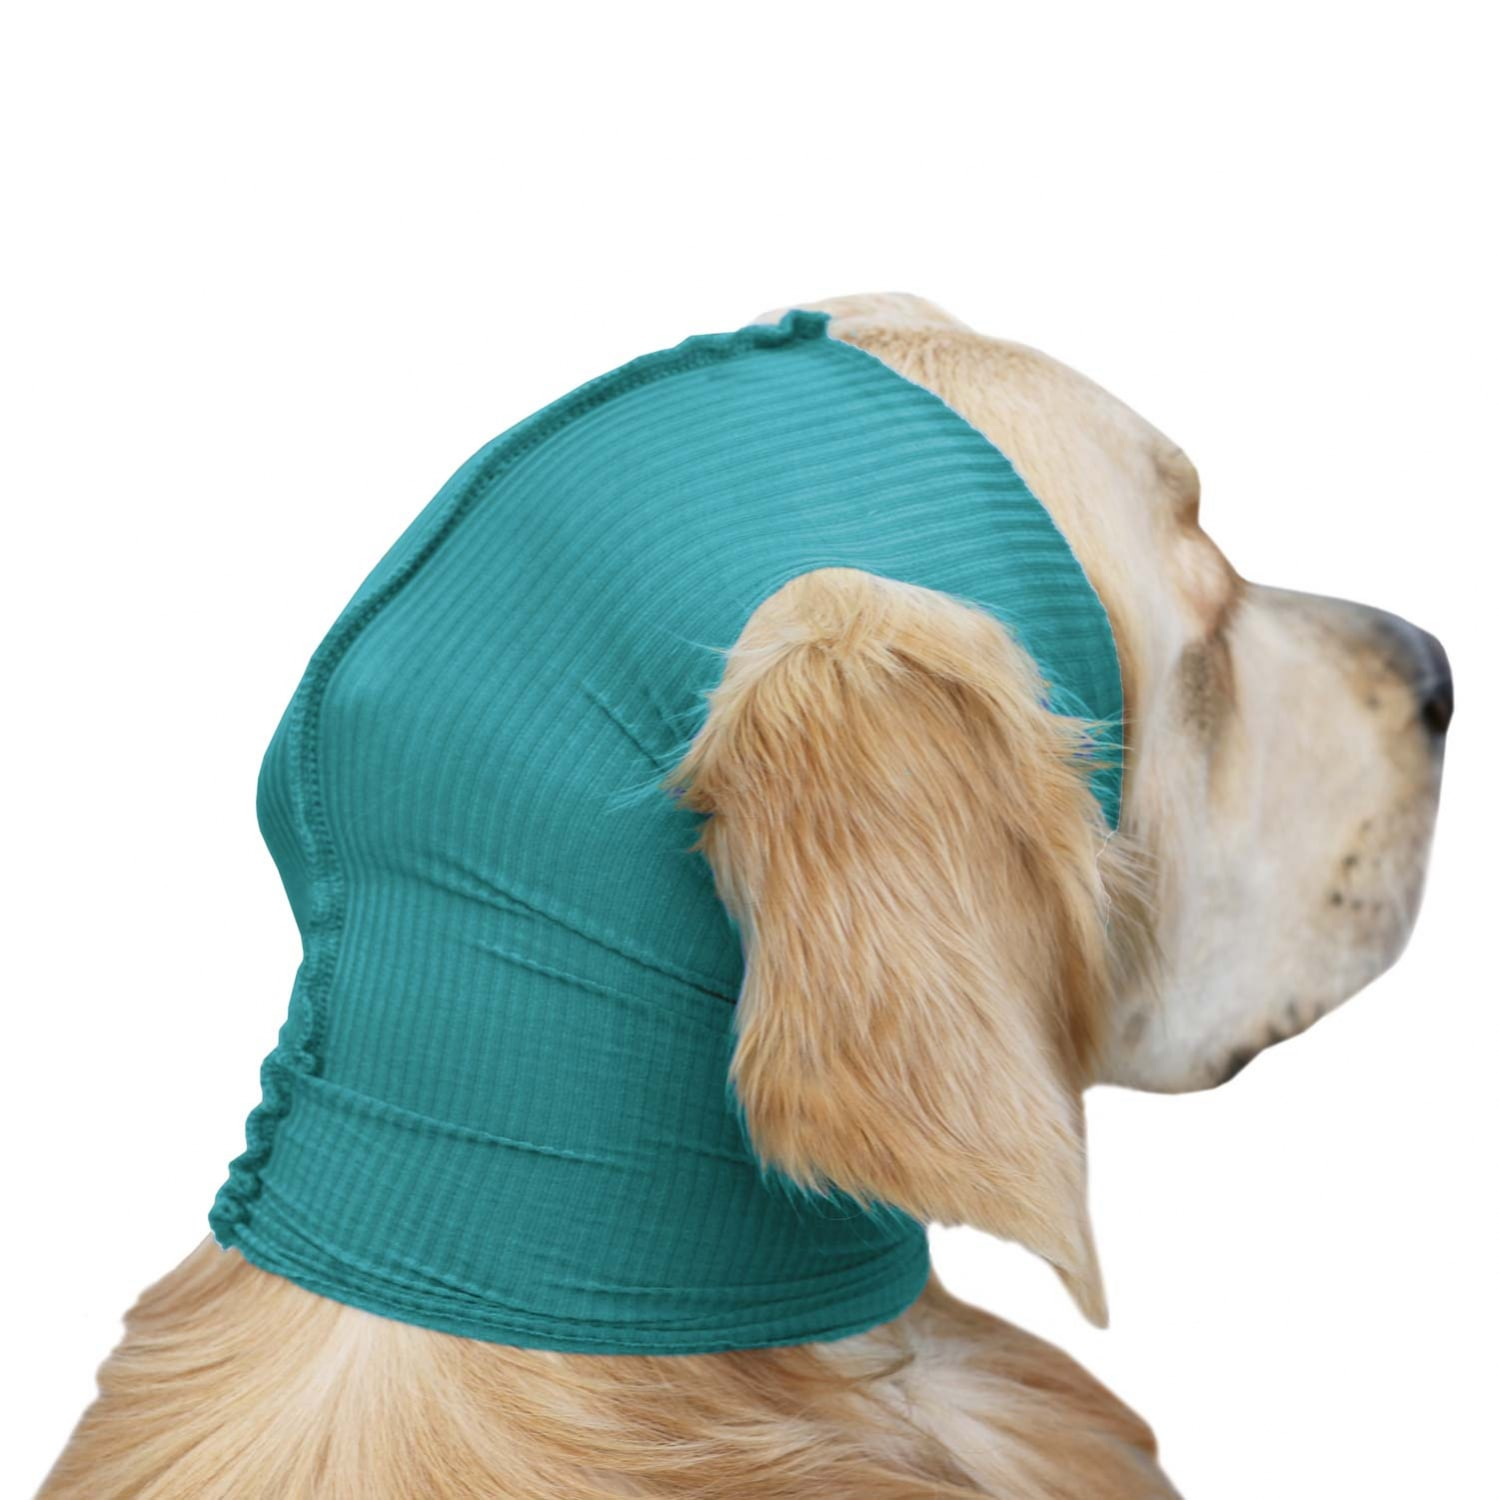 https://static.praxisdienst.com/out/pictures/generated/product/2/1500_1500_100/191801_vetmedcare_wundschutzschlauch_hund.jpg